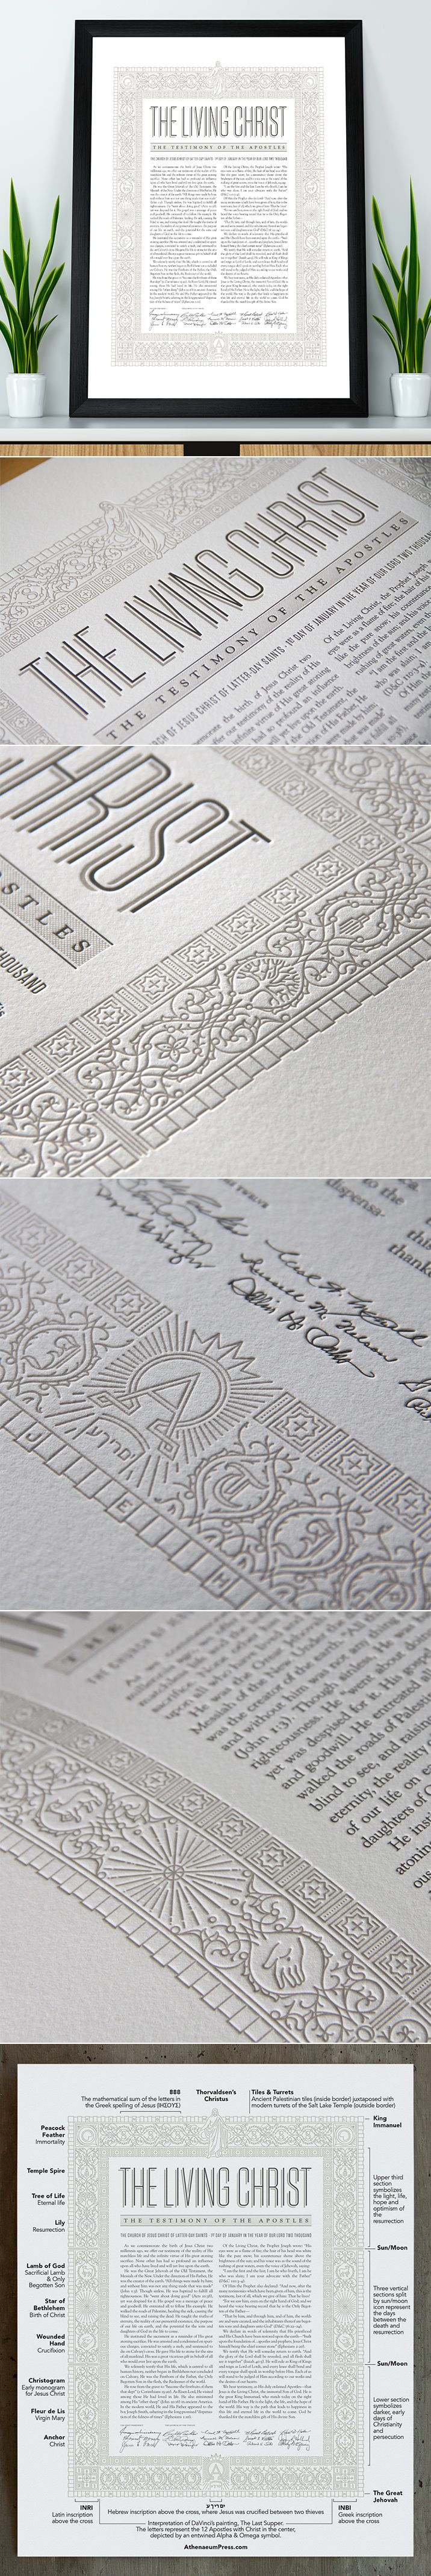 """The Living Christ. A beautiful letterpress printed design inspired by the life, death and resurrection of Jesus Christ. The line work sinks deep into thick, cotton paper. Icons and symbols adorn the decorative border, referencing some of the recognizable representations of Christian history while other elements are conveyed more abstractly. The Living Christ design is 12x16"""" on a 16x20"""" sheet of 100% cotton paper—a standard size for easy and inexpensive framing. #thelivingchrist #ldsart…"""